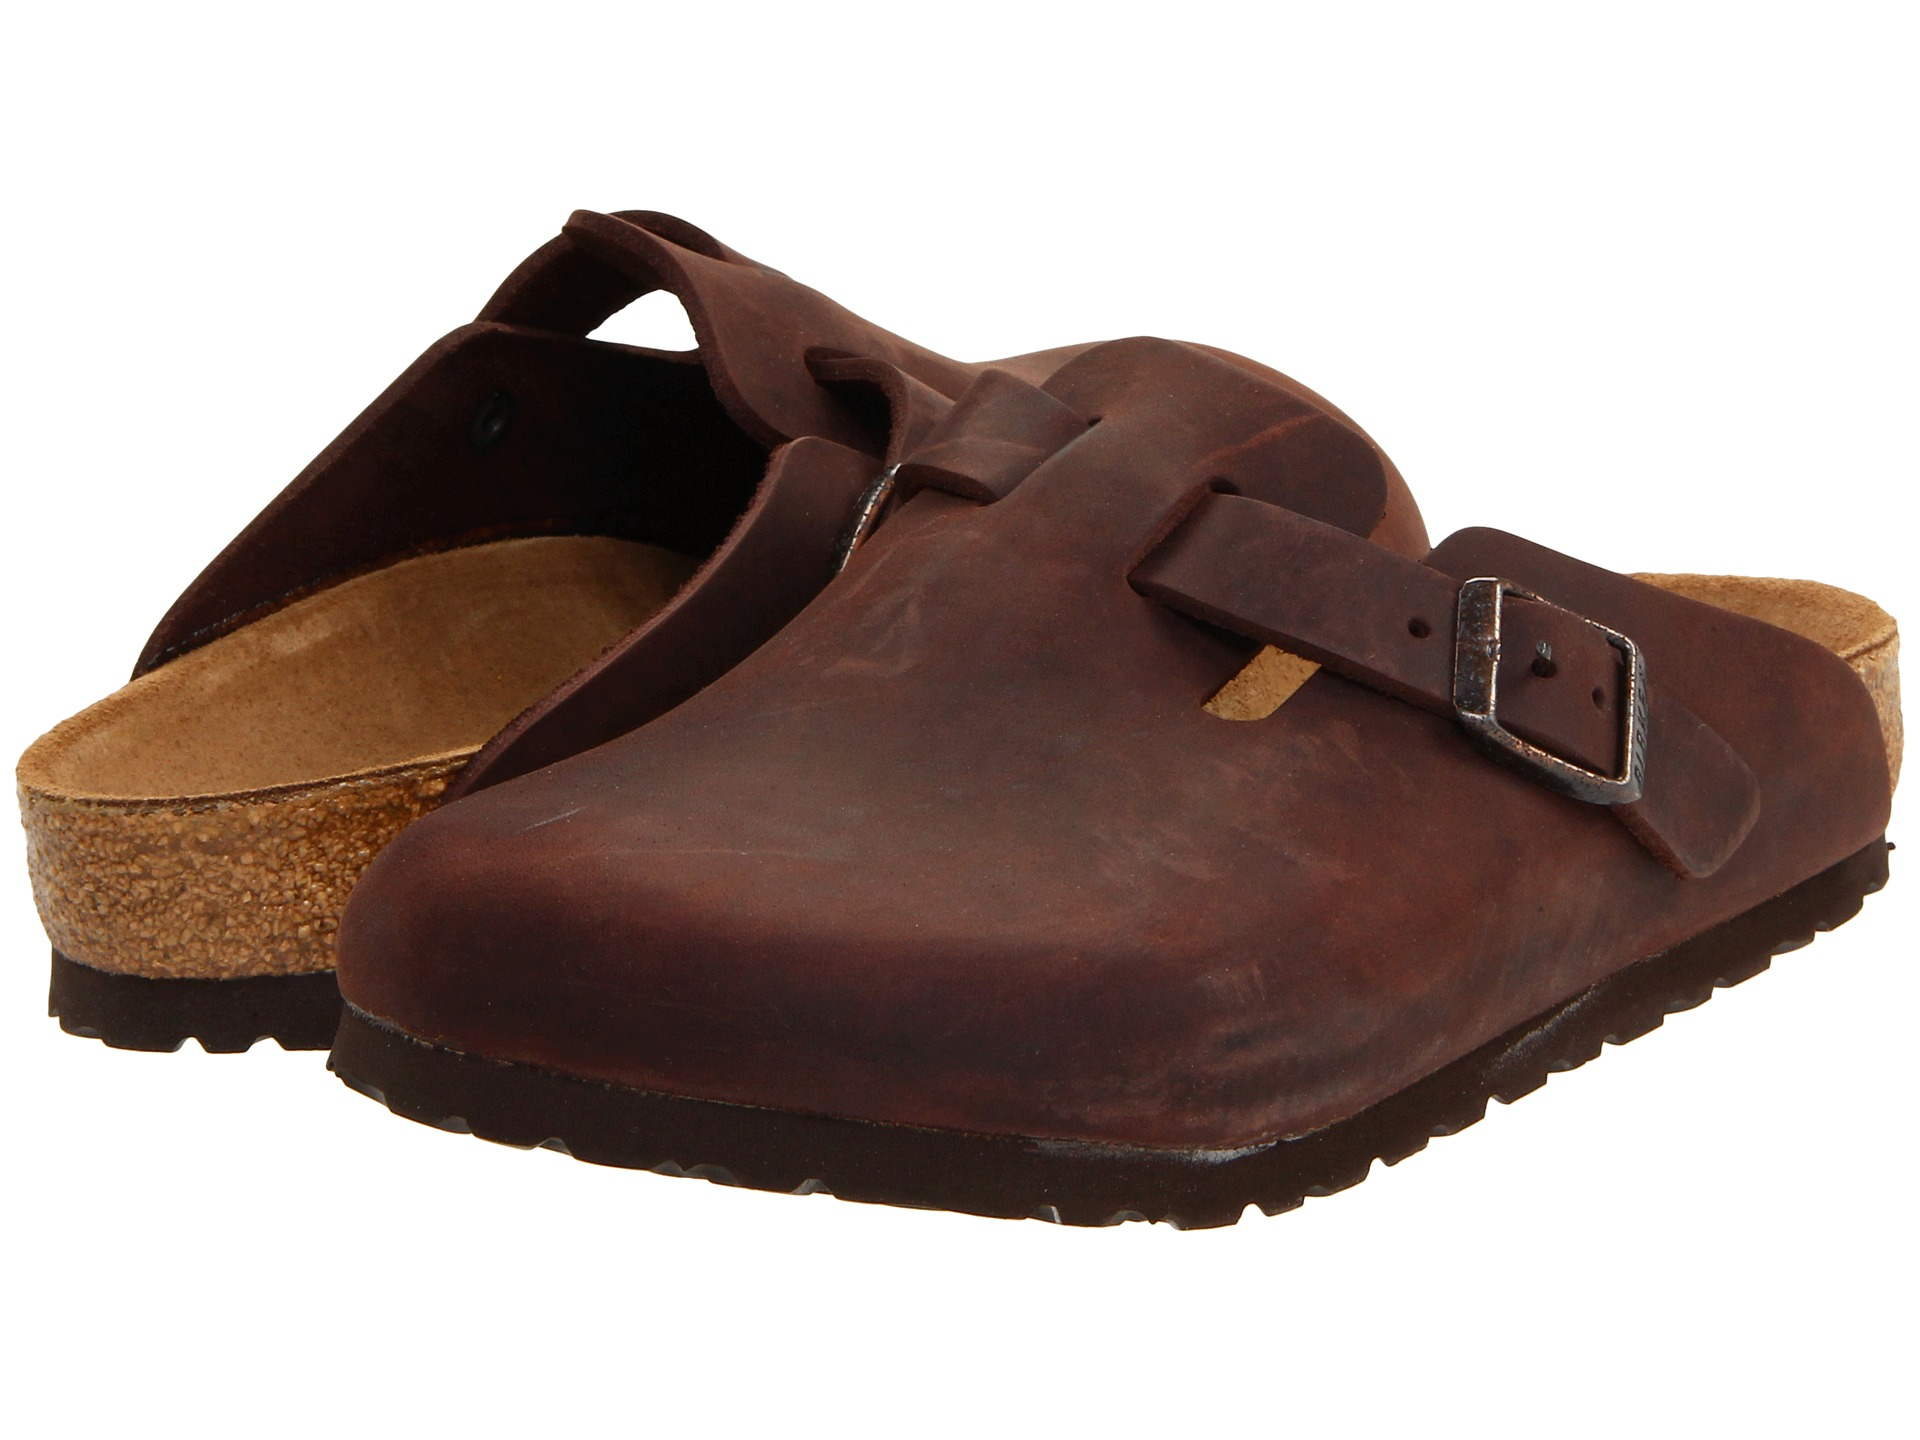 Birkenstock Kids Shoes